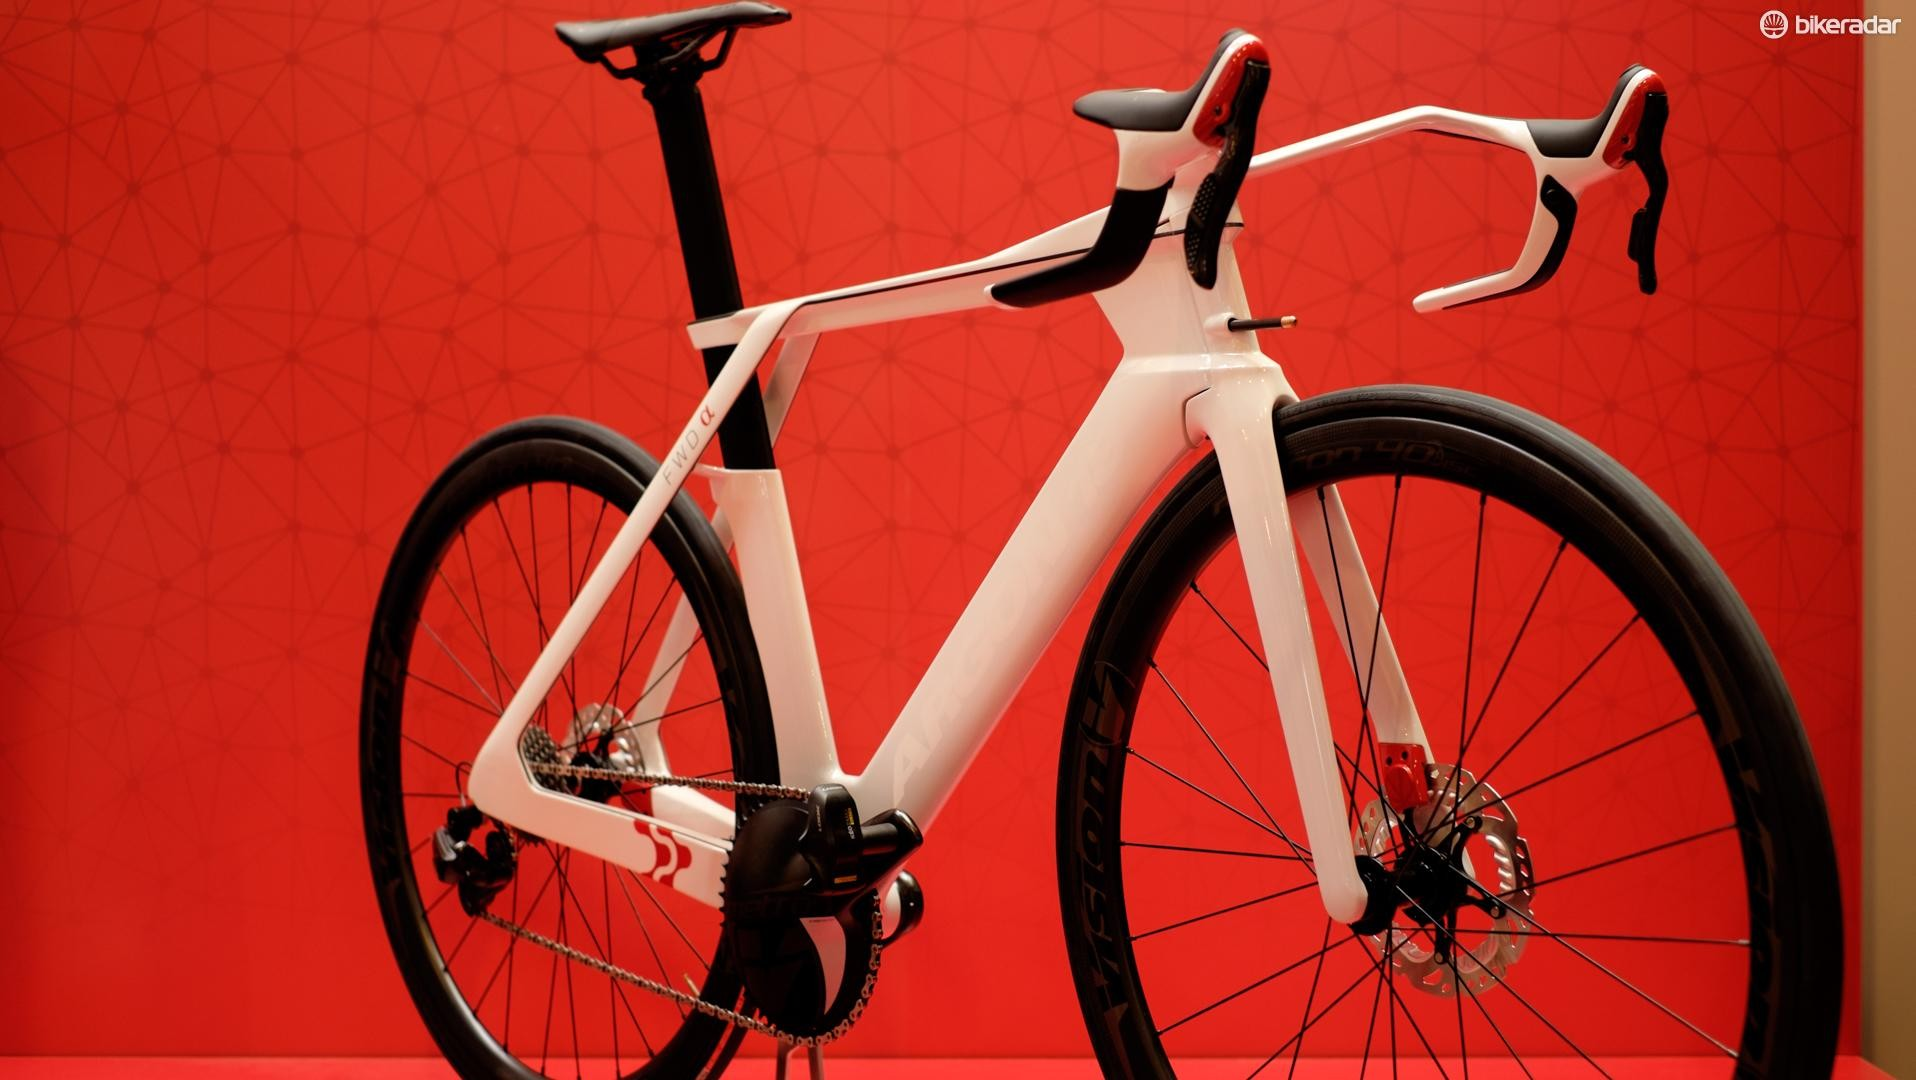 Argon 18's concept bike pulled in a lot of attention at Eurobike 2016, and it's not hard to see why